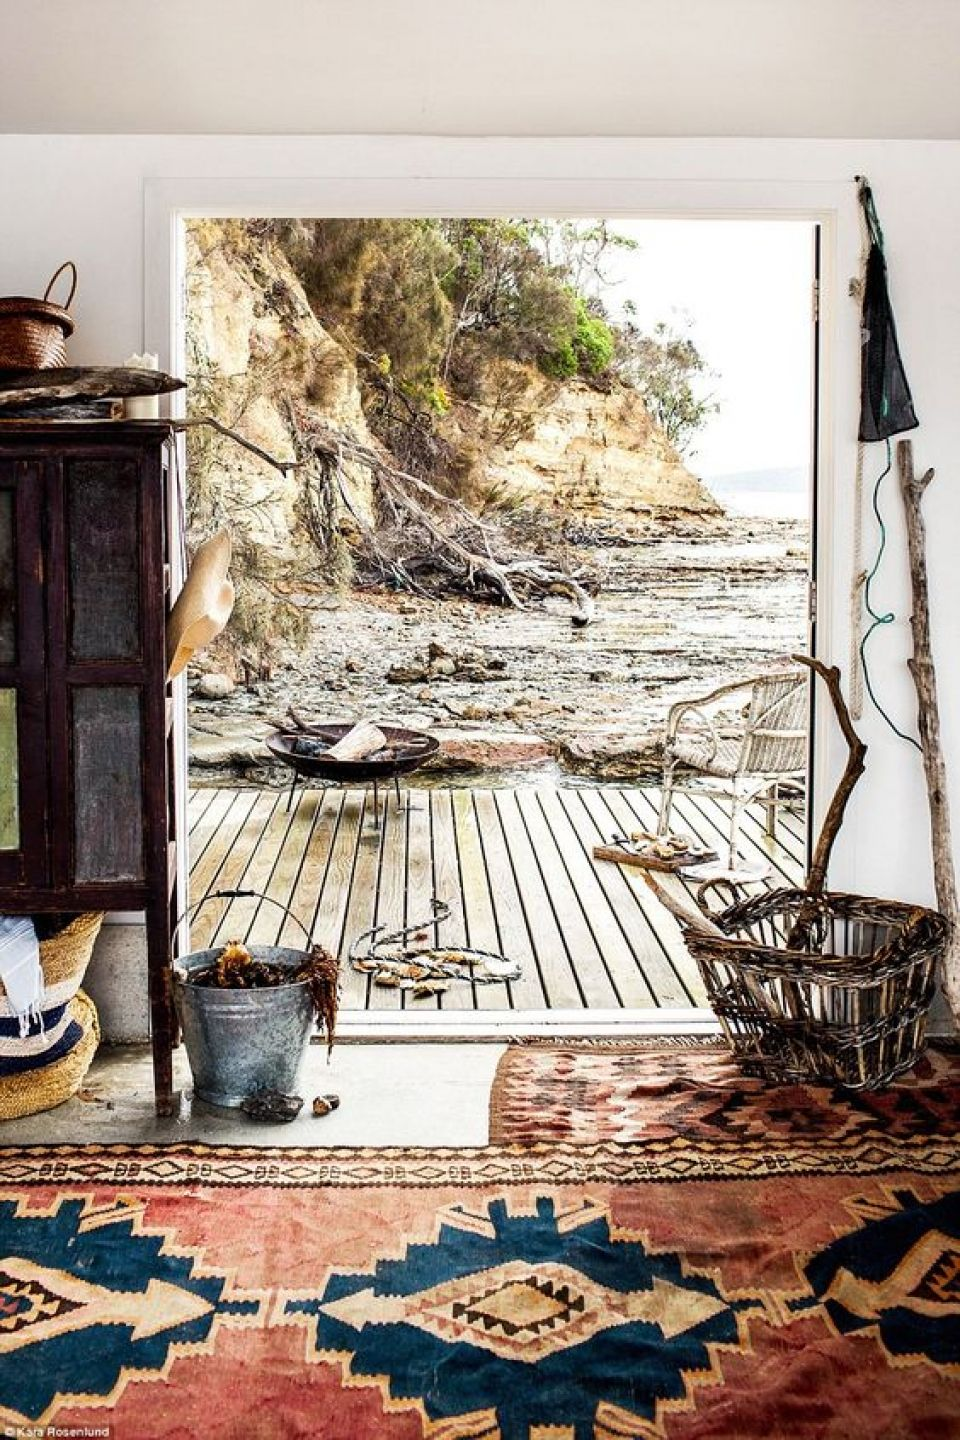 Engagement Party Getaways Close to City Centres Satellite Island